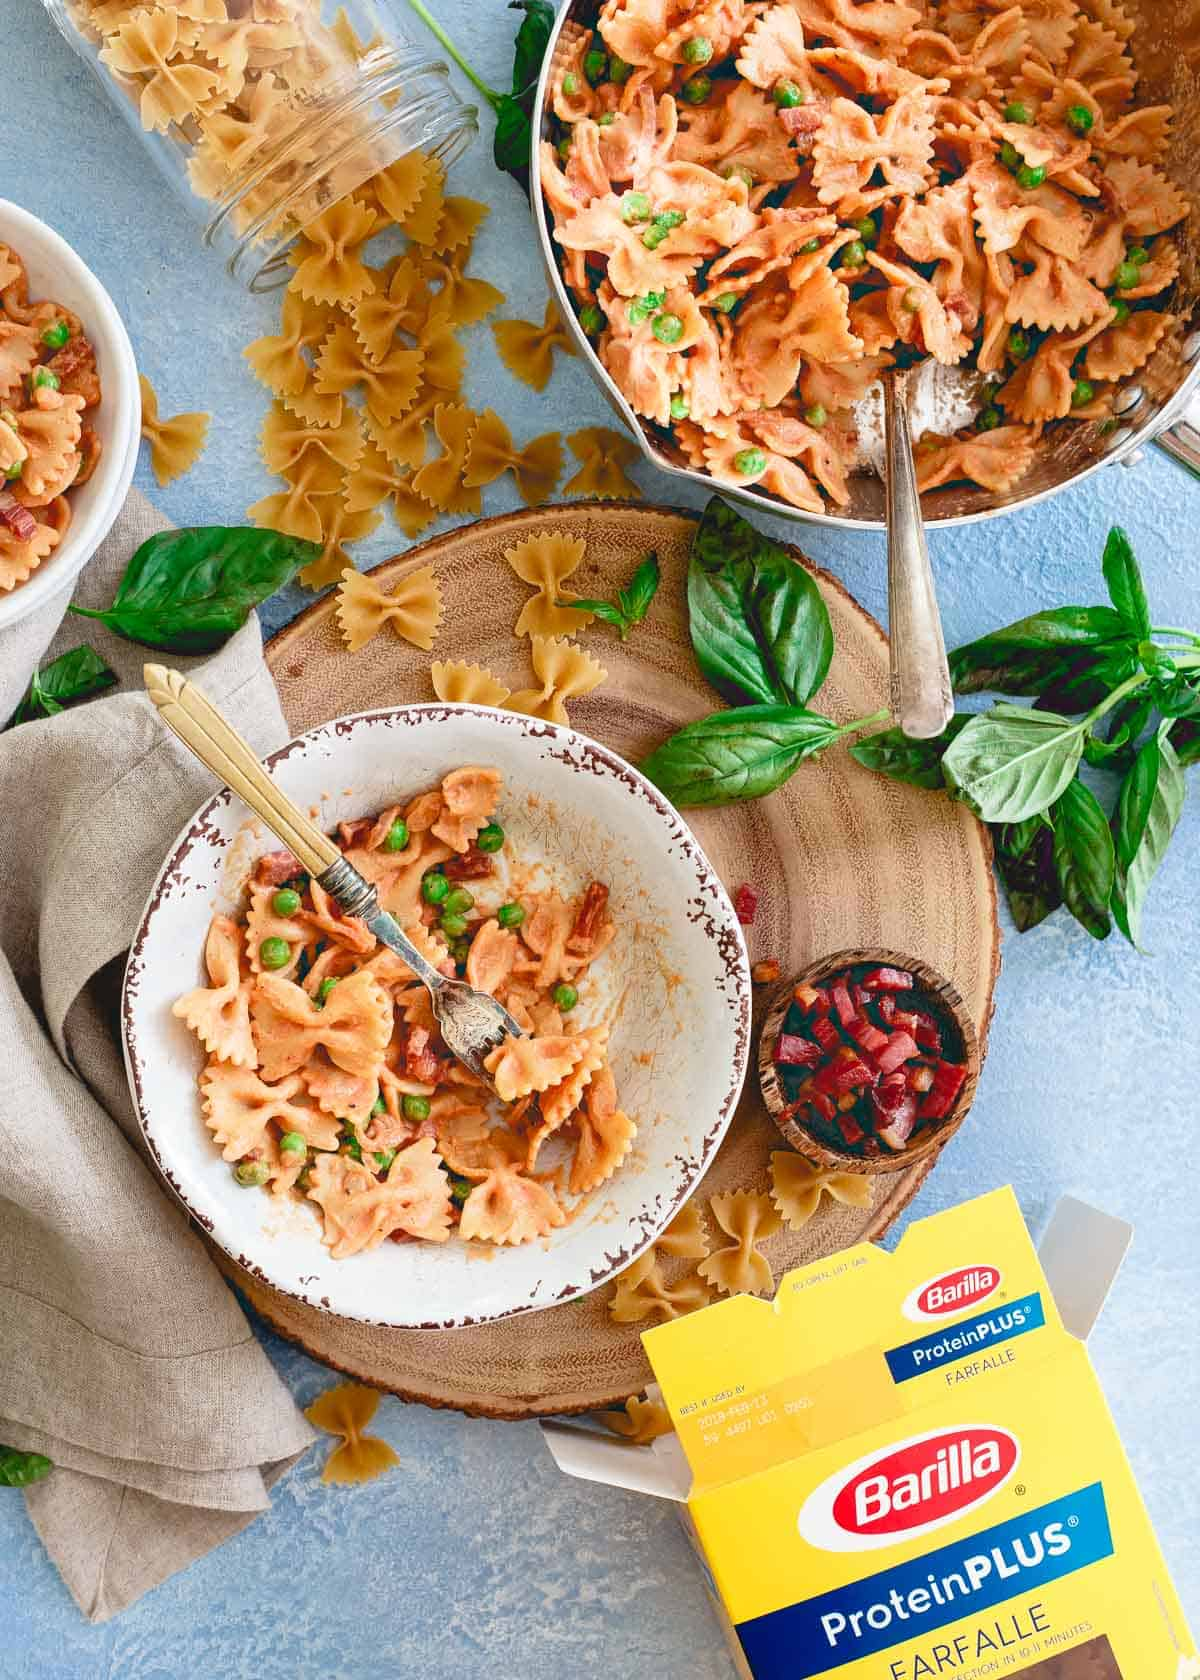 Packed with lean protein, Barilla's ProteinPlus farfalle is a great way to get an easy and healthy meal on the table at dinner time in this creamy tomato farfalle.